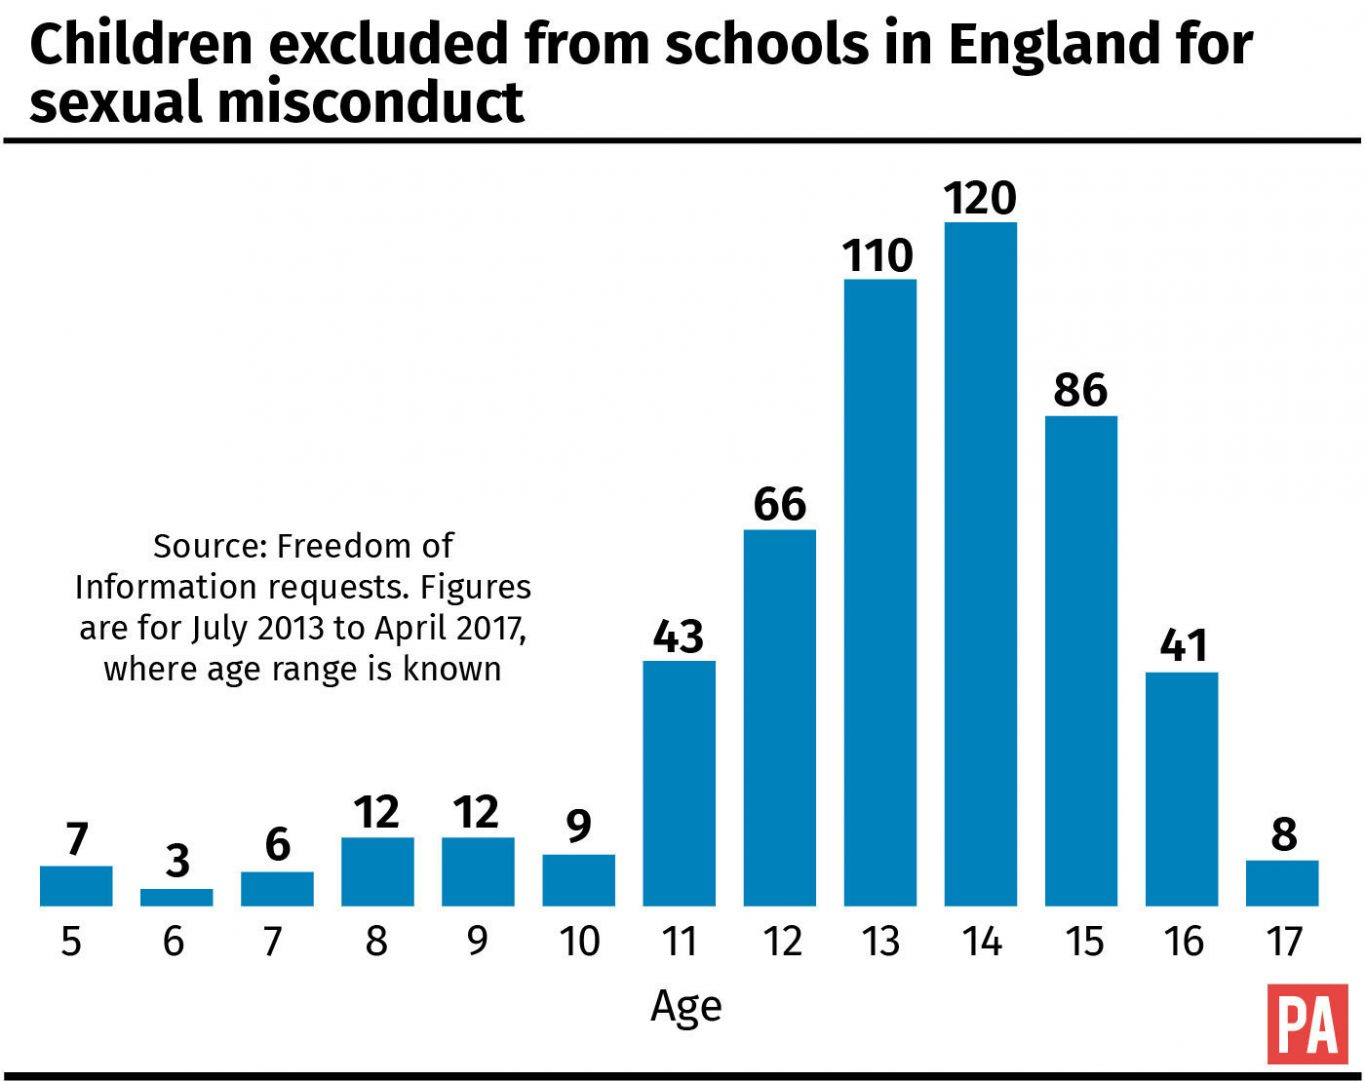 Children excluded from schools in England for sexual misconduct.